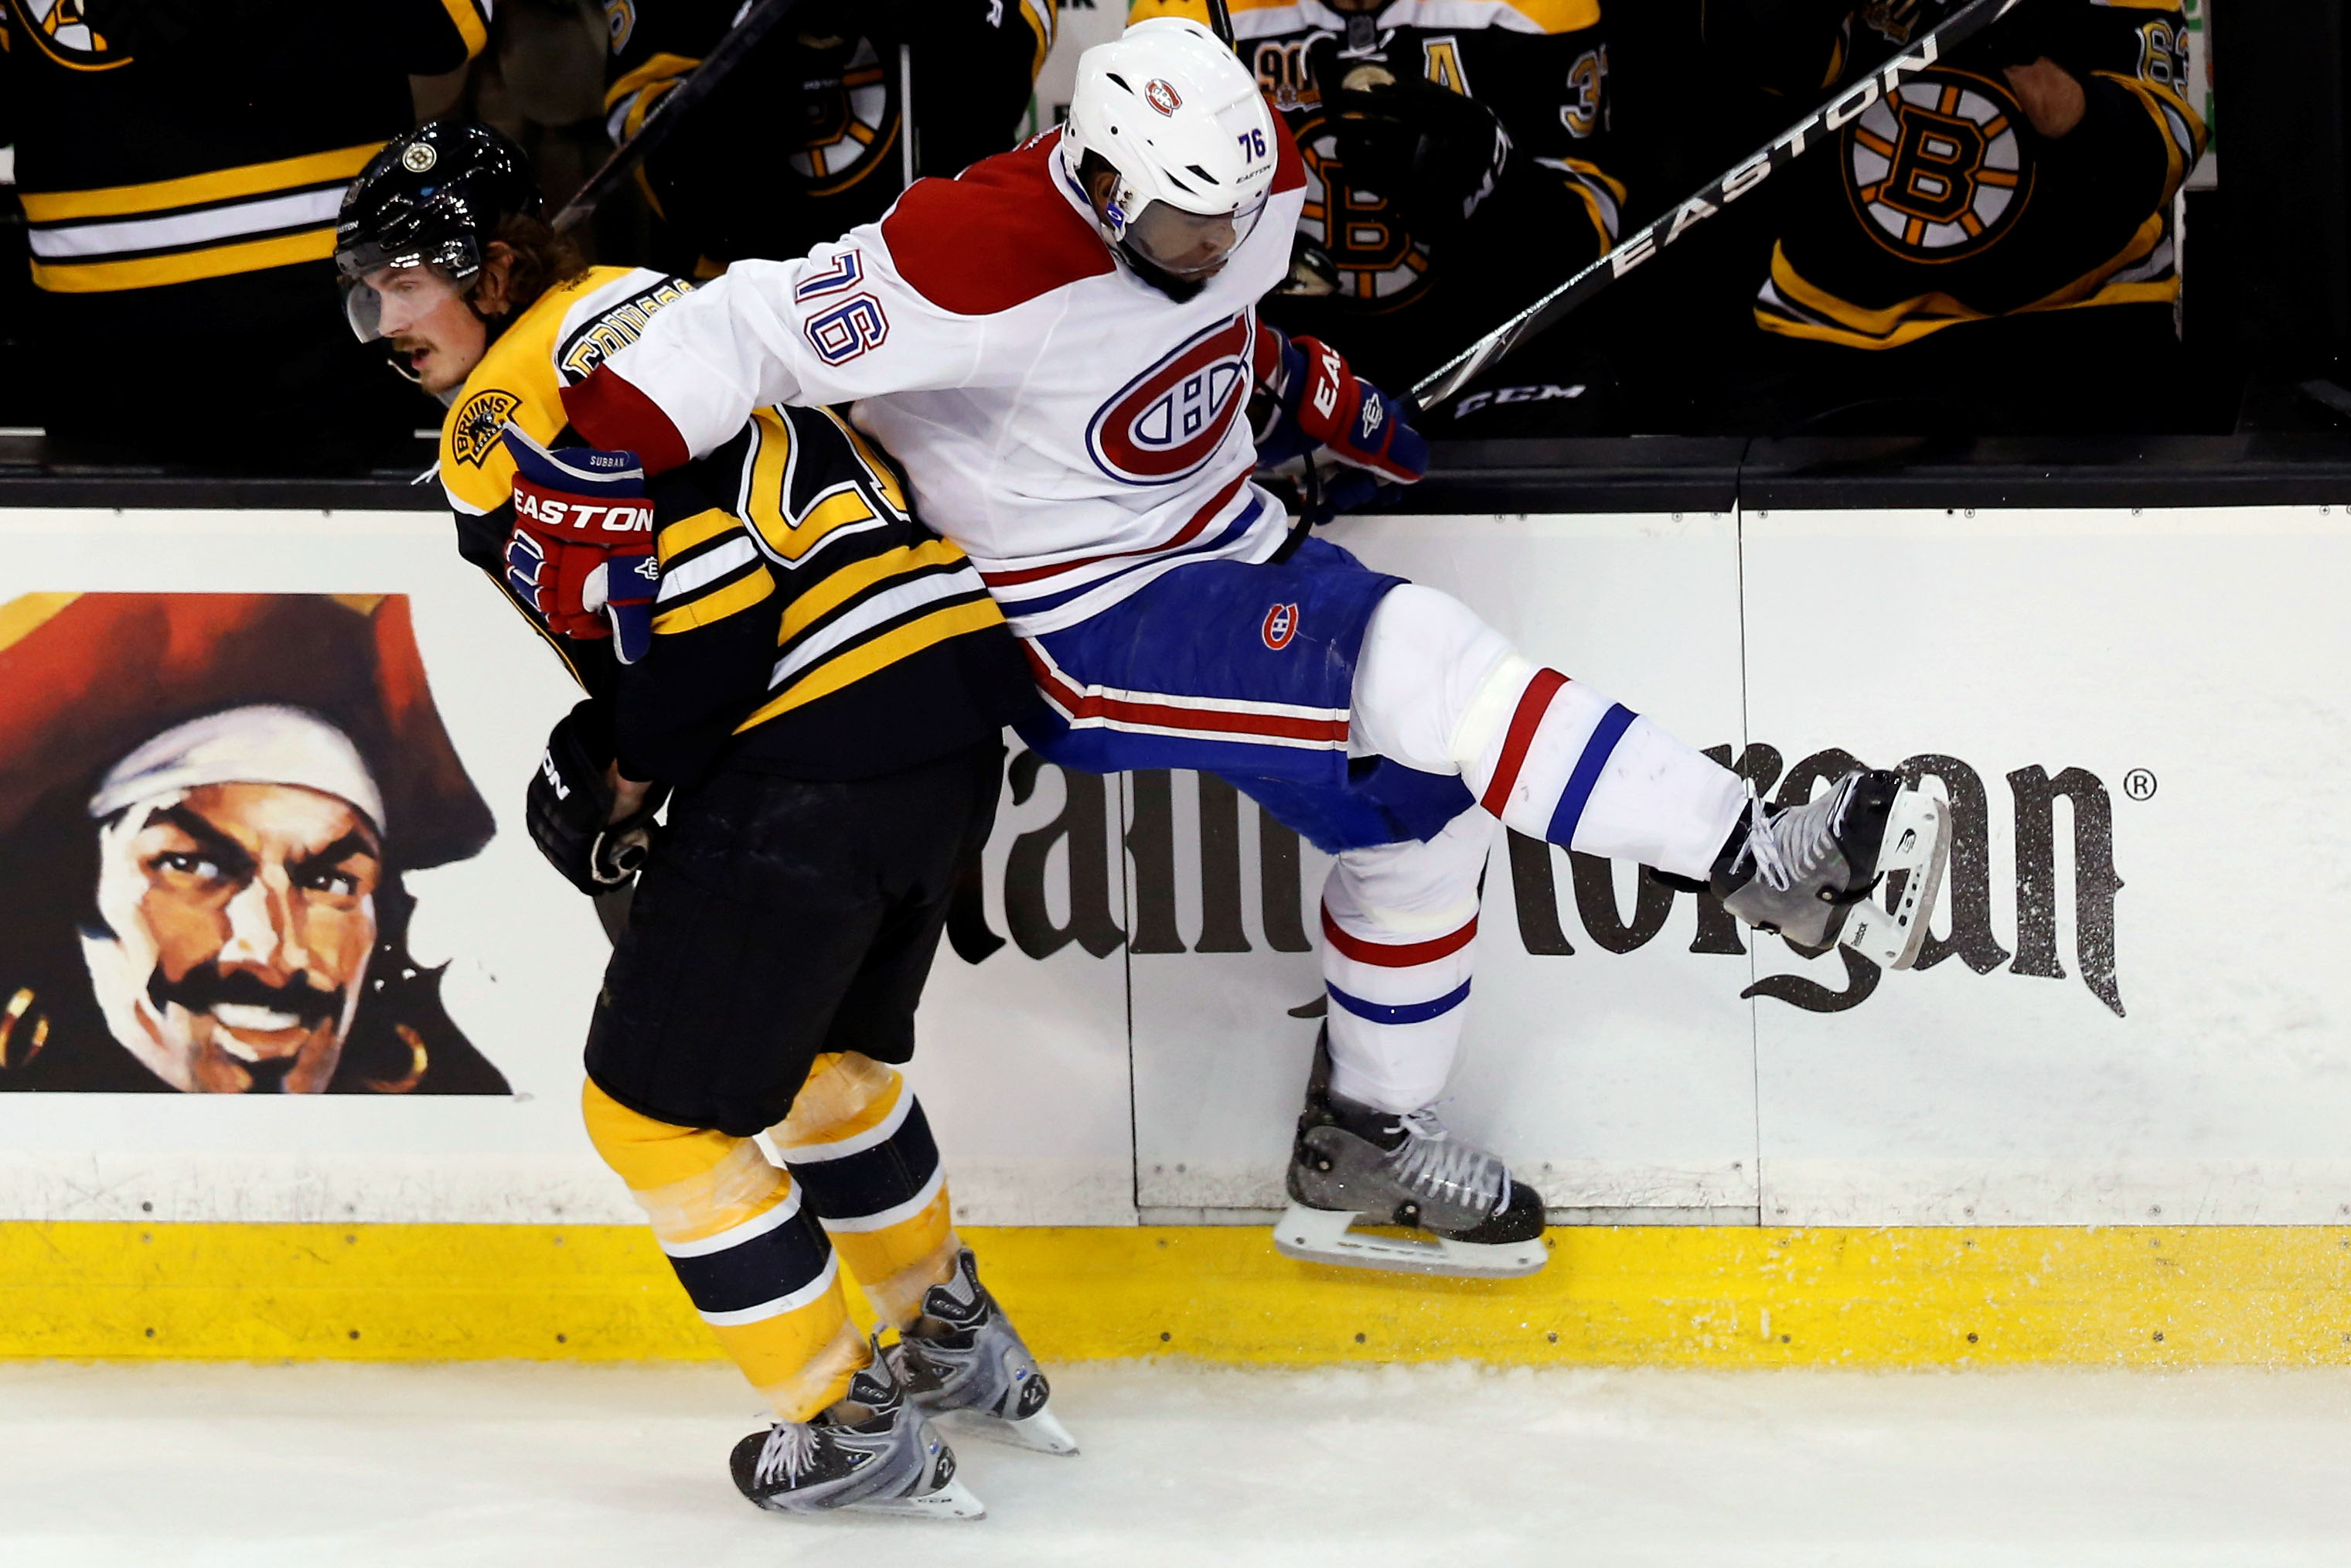 2014-05-15T024553Z_1052866993_NOCID_RTRMADP_3_NHL-STANLEY-CUP-PLAYOFFS-MONTREAL-CANADIENS-AT-BOSTON-BRUINS.jpg